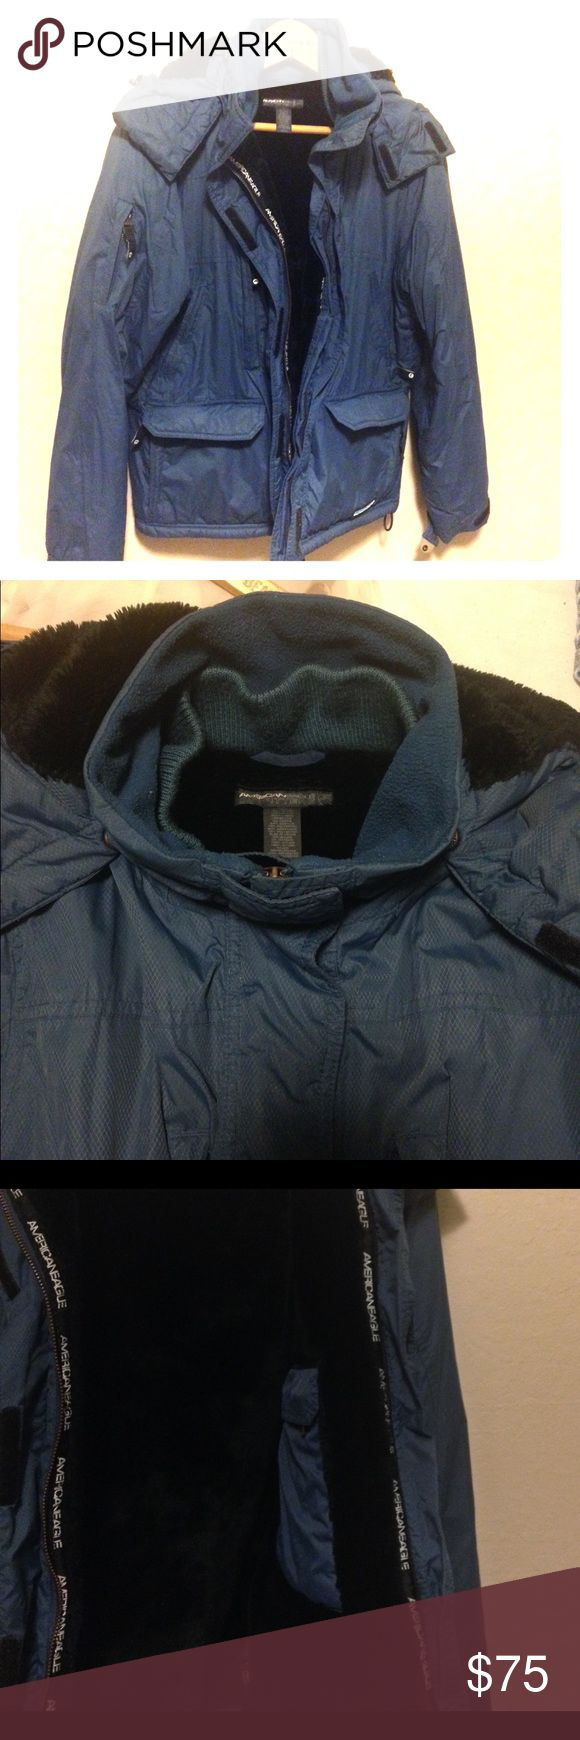 ❄️AEO Heavyweight Utility Parka❄️ Warm cozy faux fur lined parka with 12 pockets!!! Be prepared for anything with this puppy. Hood has drawstrings for extra protection from the elements, also sinches back or can be removed completely by zipping off. Cuffs Velcro tight to prevent exposure. Gently used condition (see pic 6 for wear on one shoulder) American Eagle Outfitters Jackets & Coats Utility Jackets